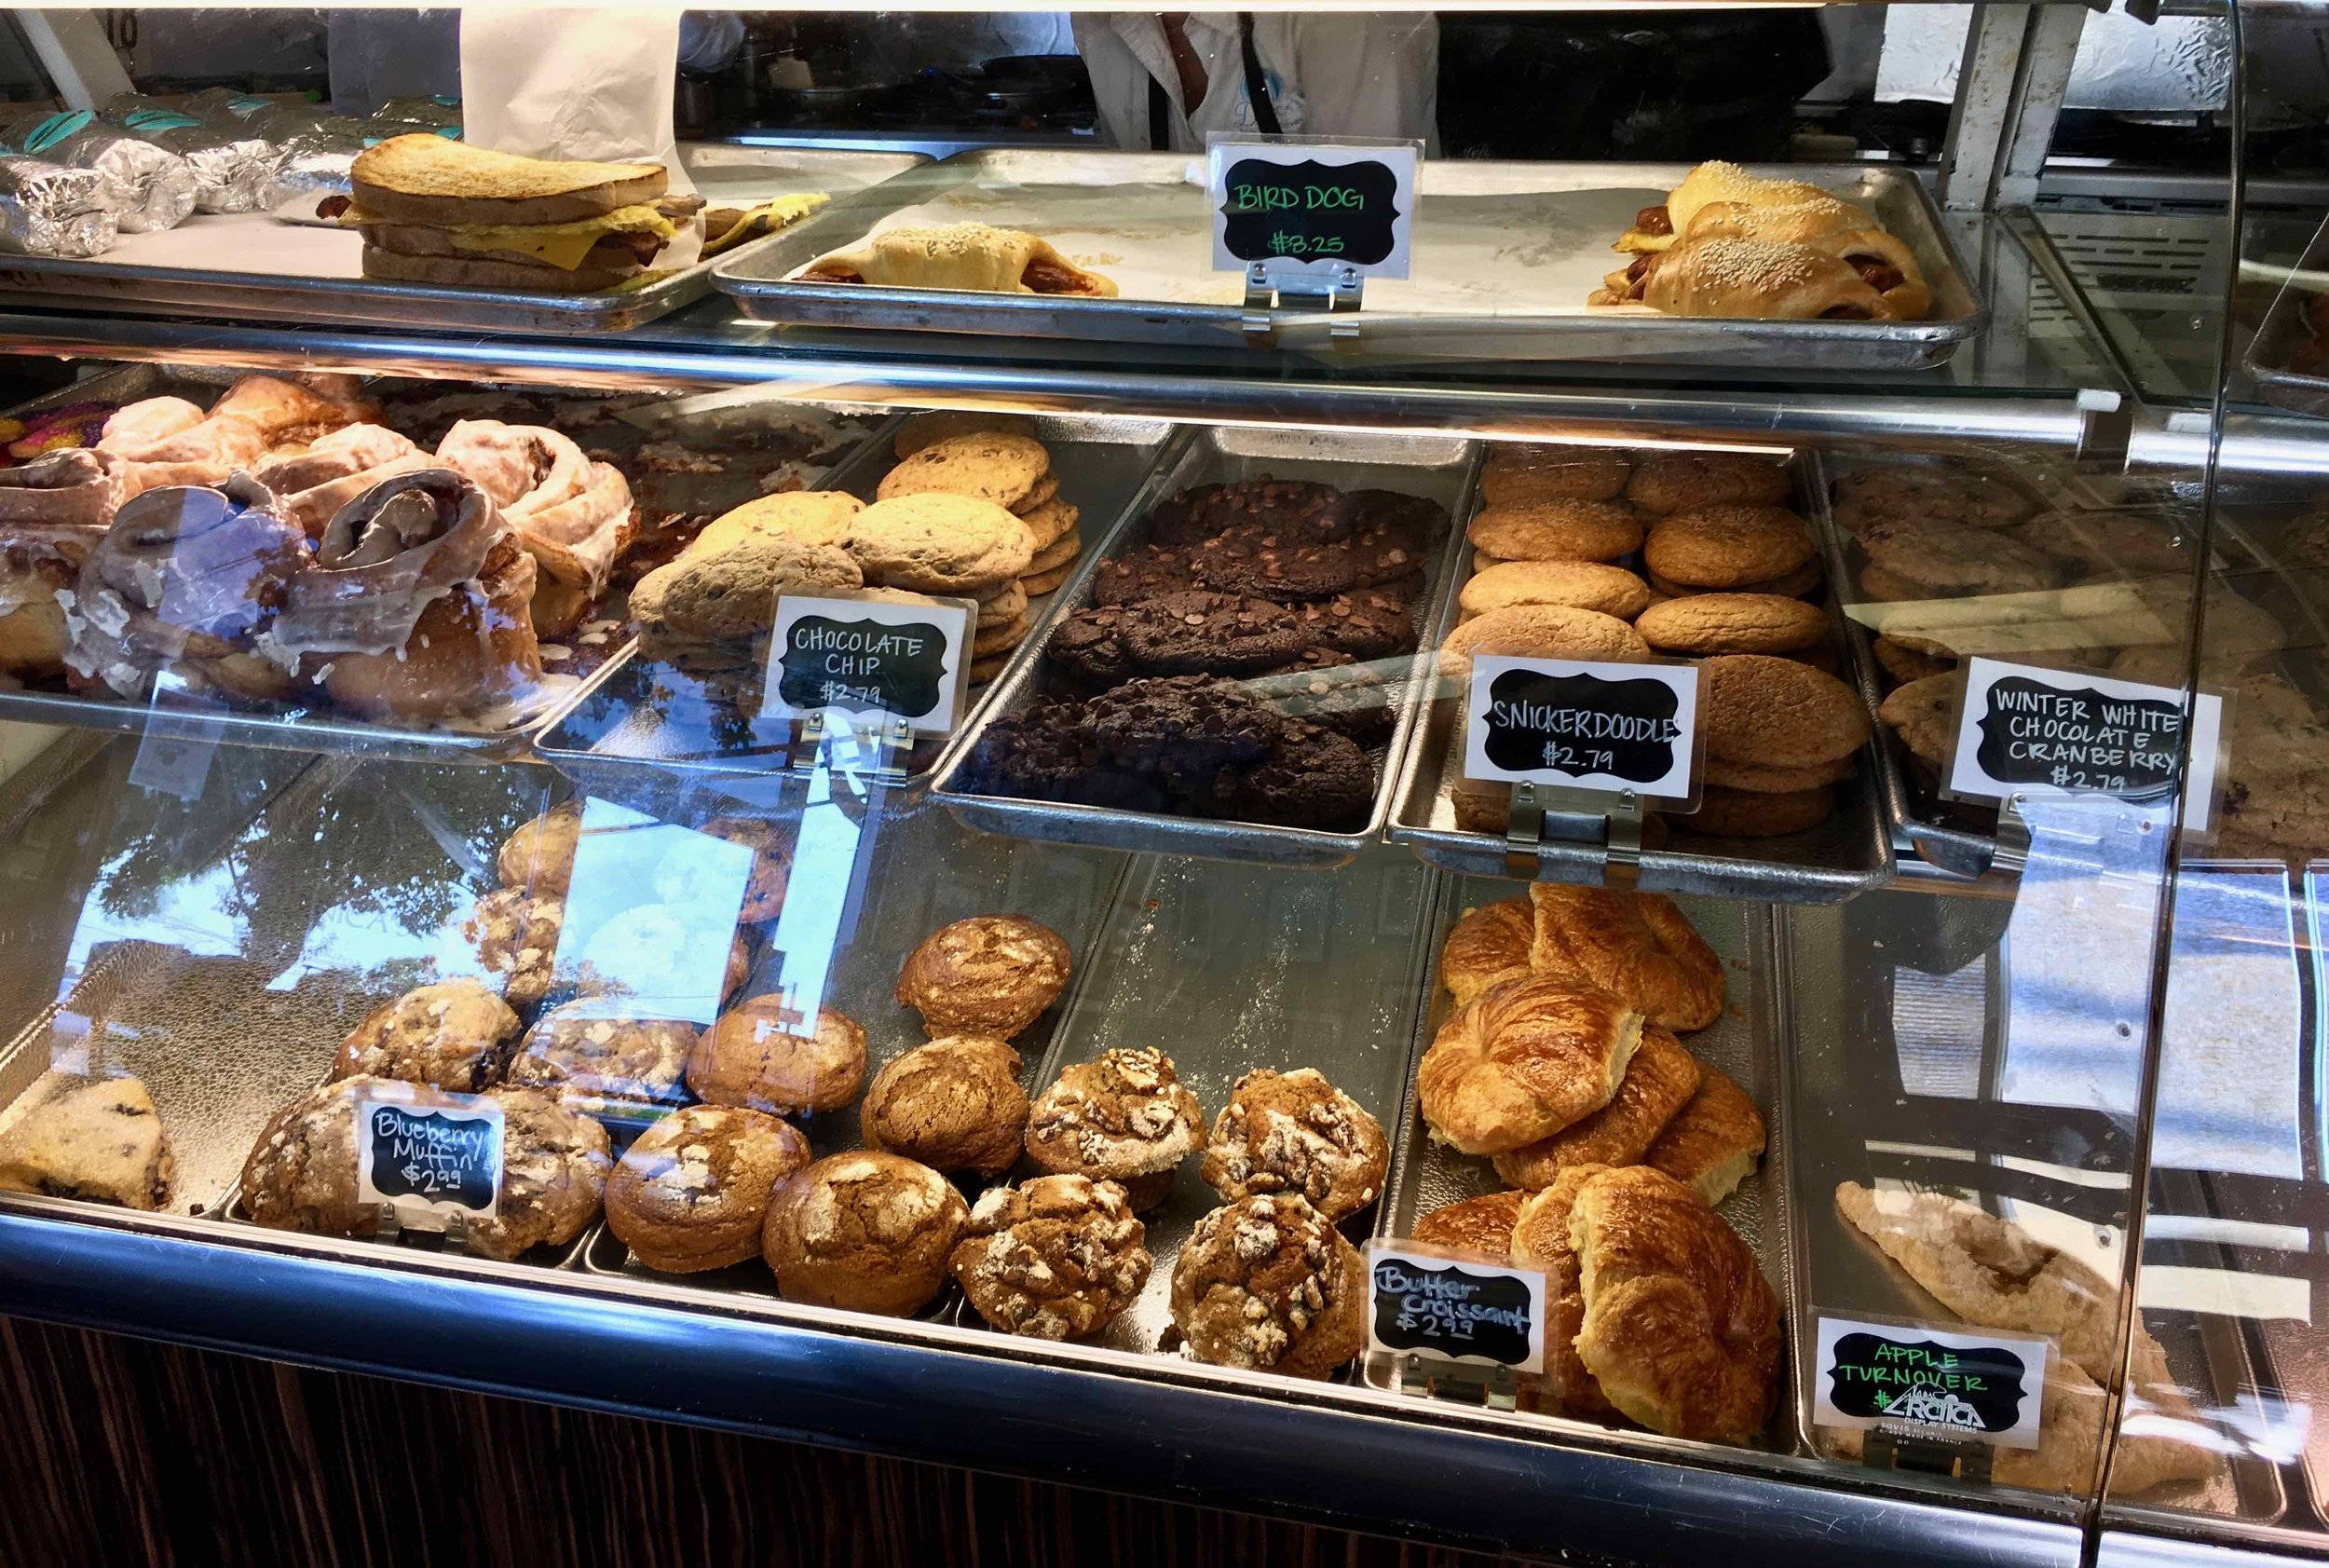 bakery case at Denica's